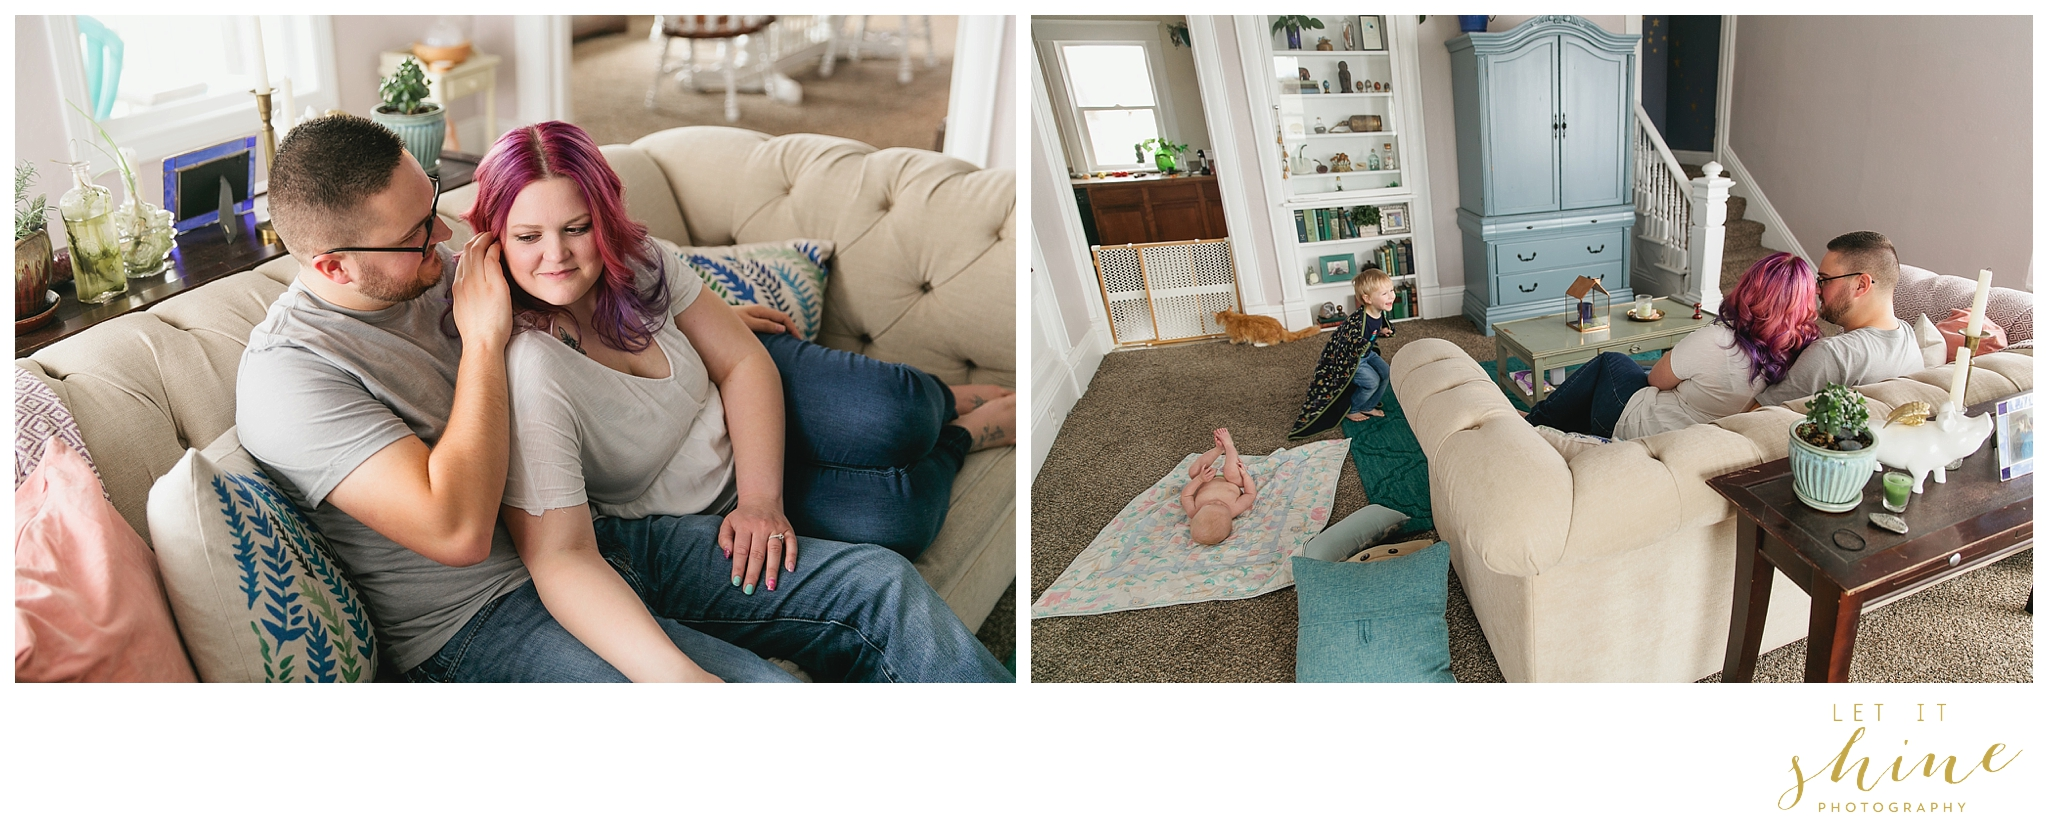 Lifestyle Family In Home Session Photographer Woodford-7540.jpg